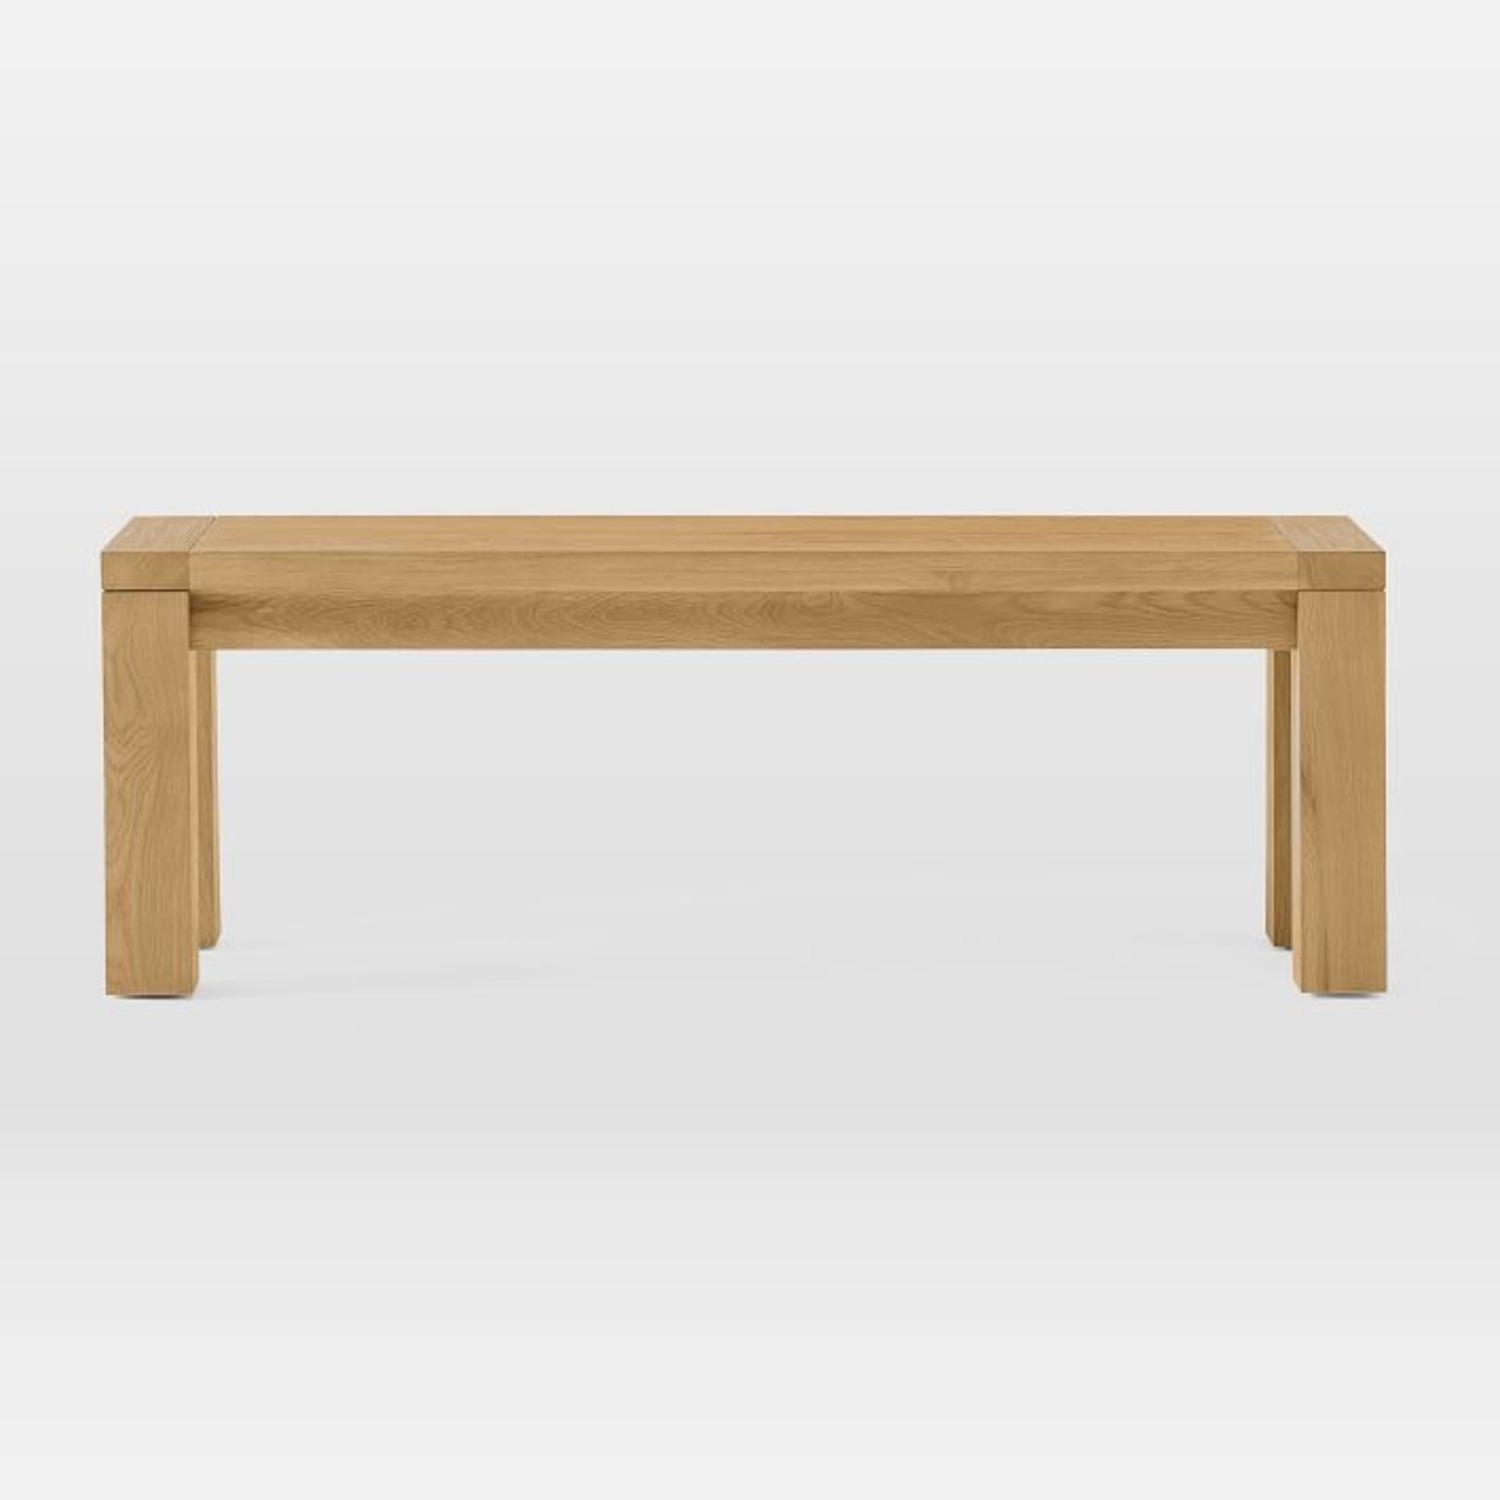 West Elm Tahoe Solid Wood Dining Bench - image-2